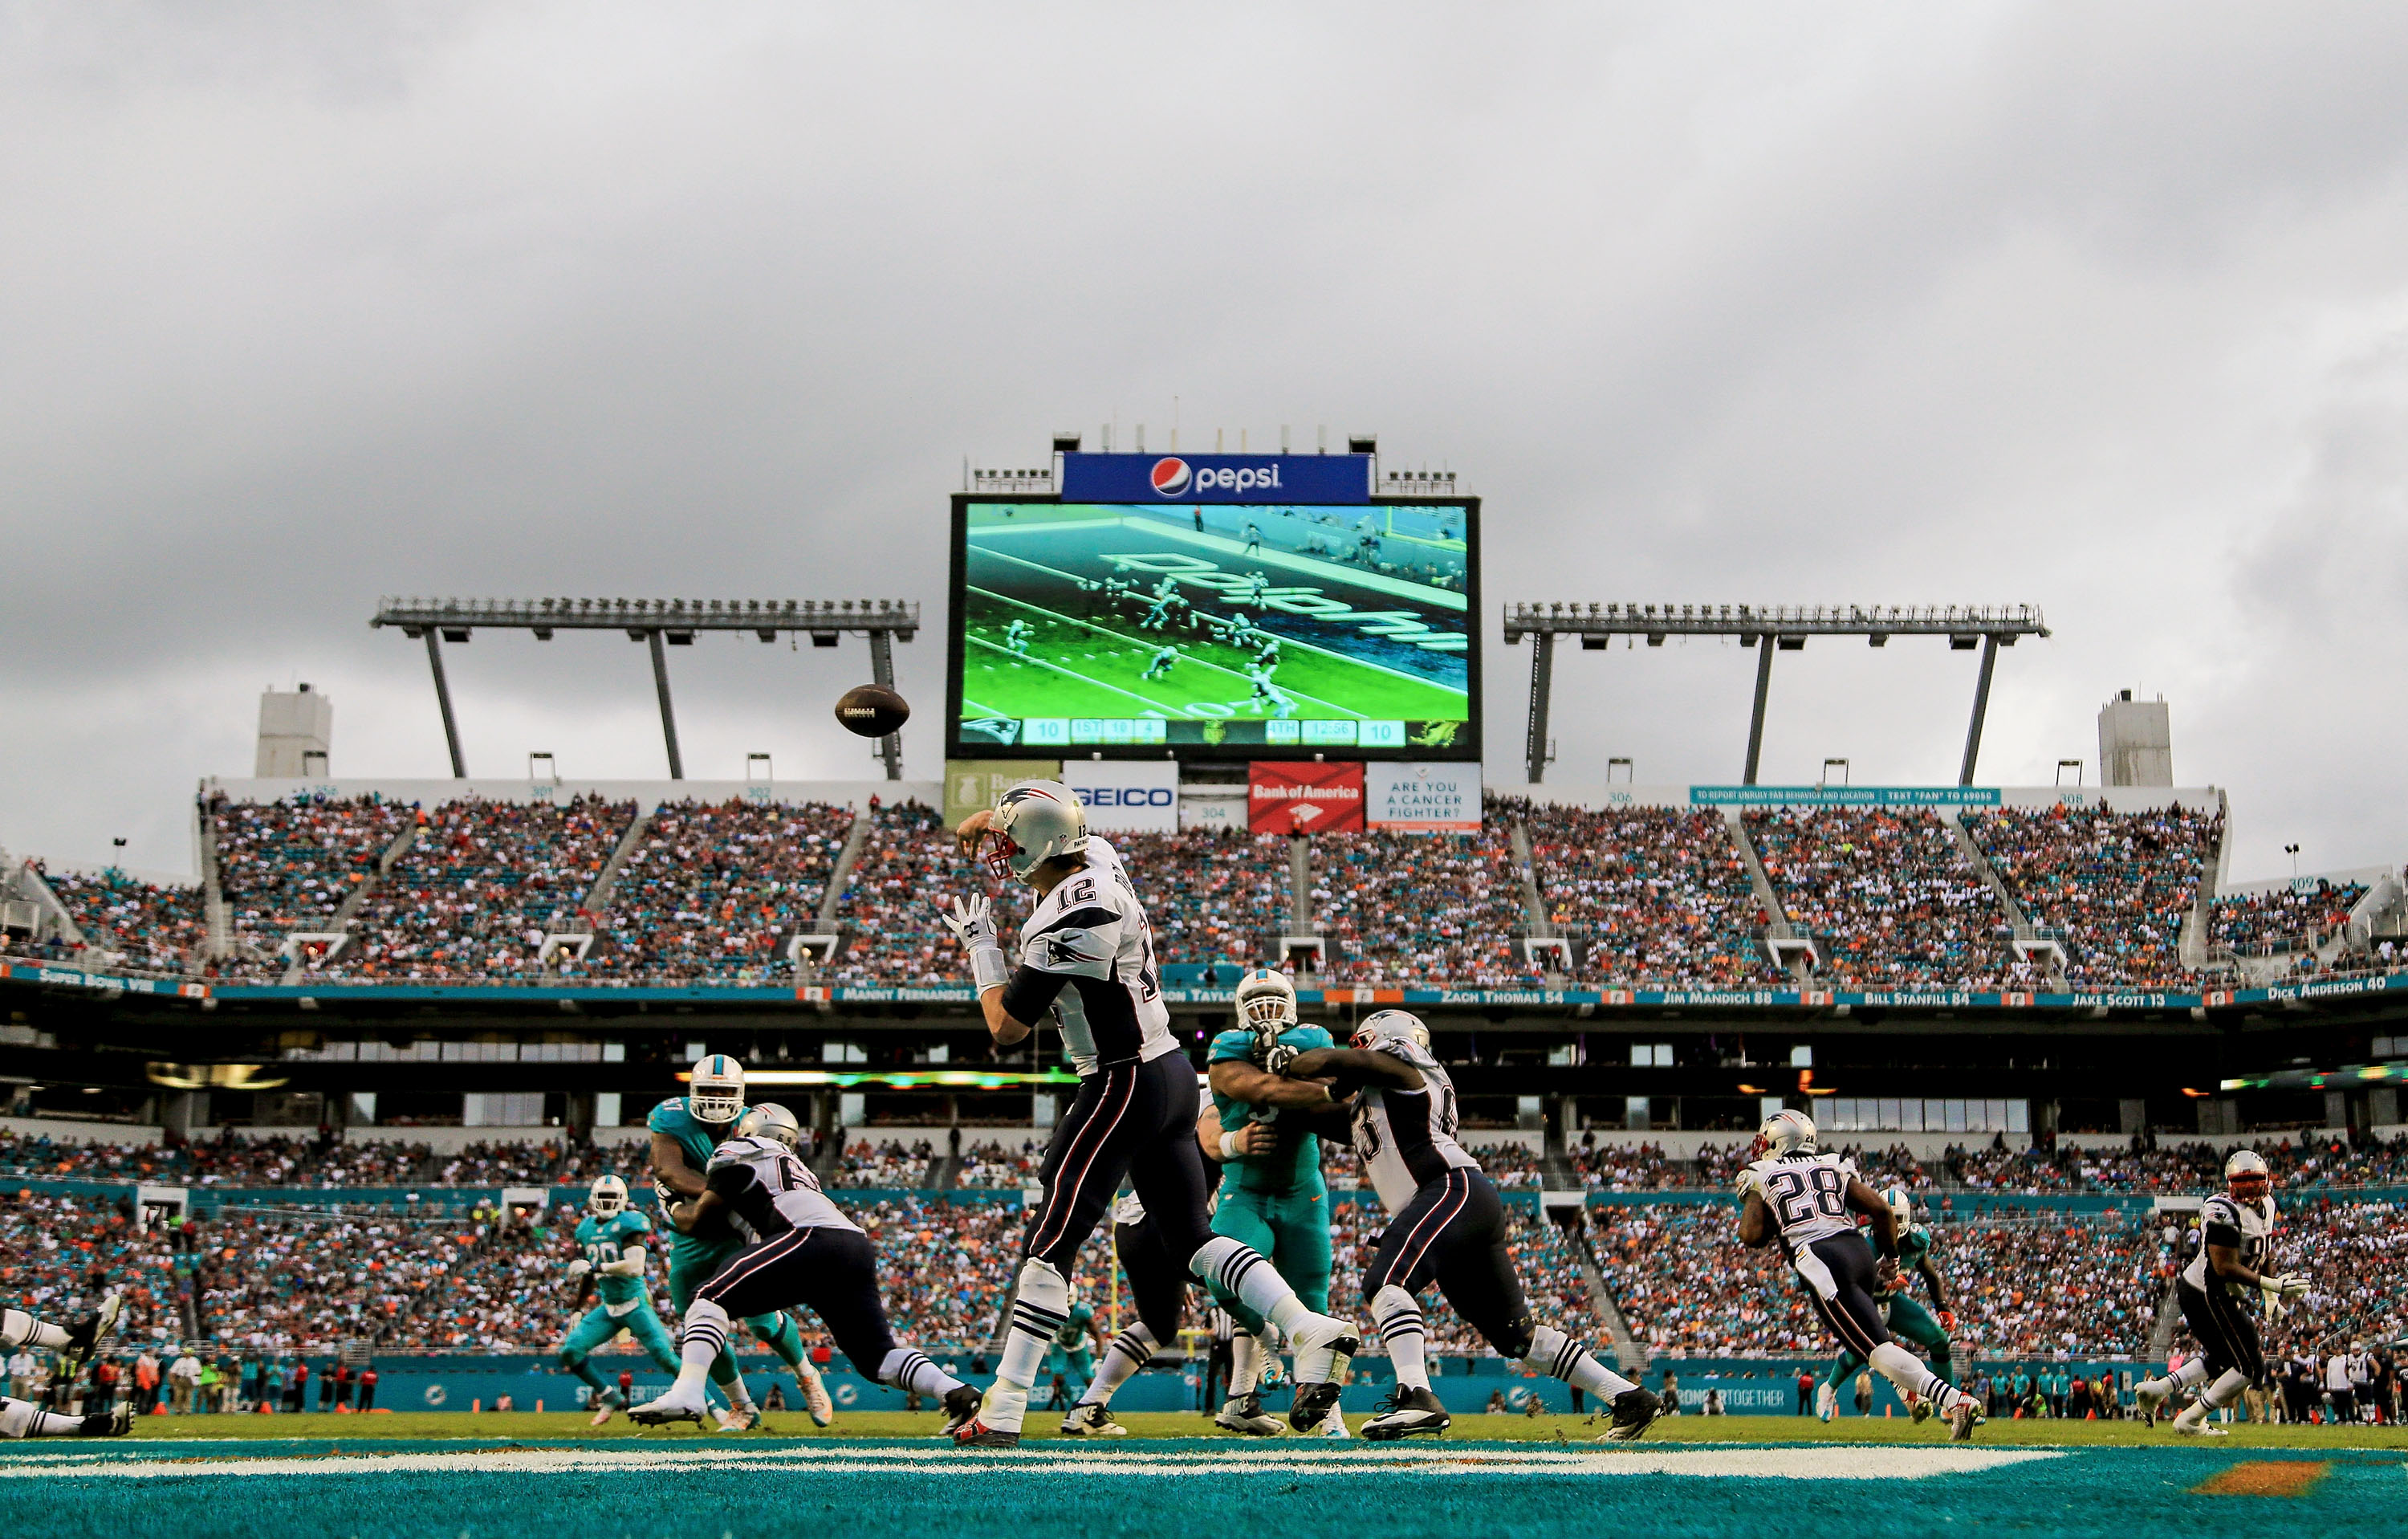 Estadio Sun Life / Getty Images